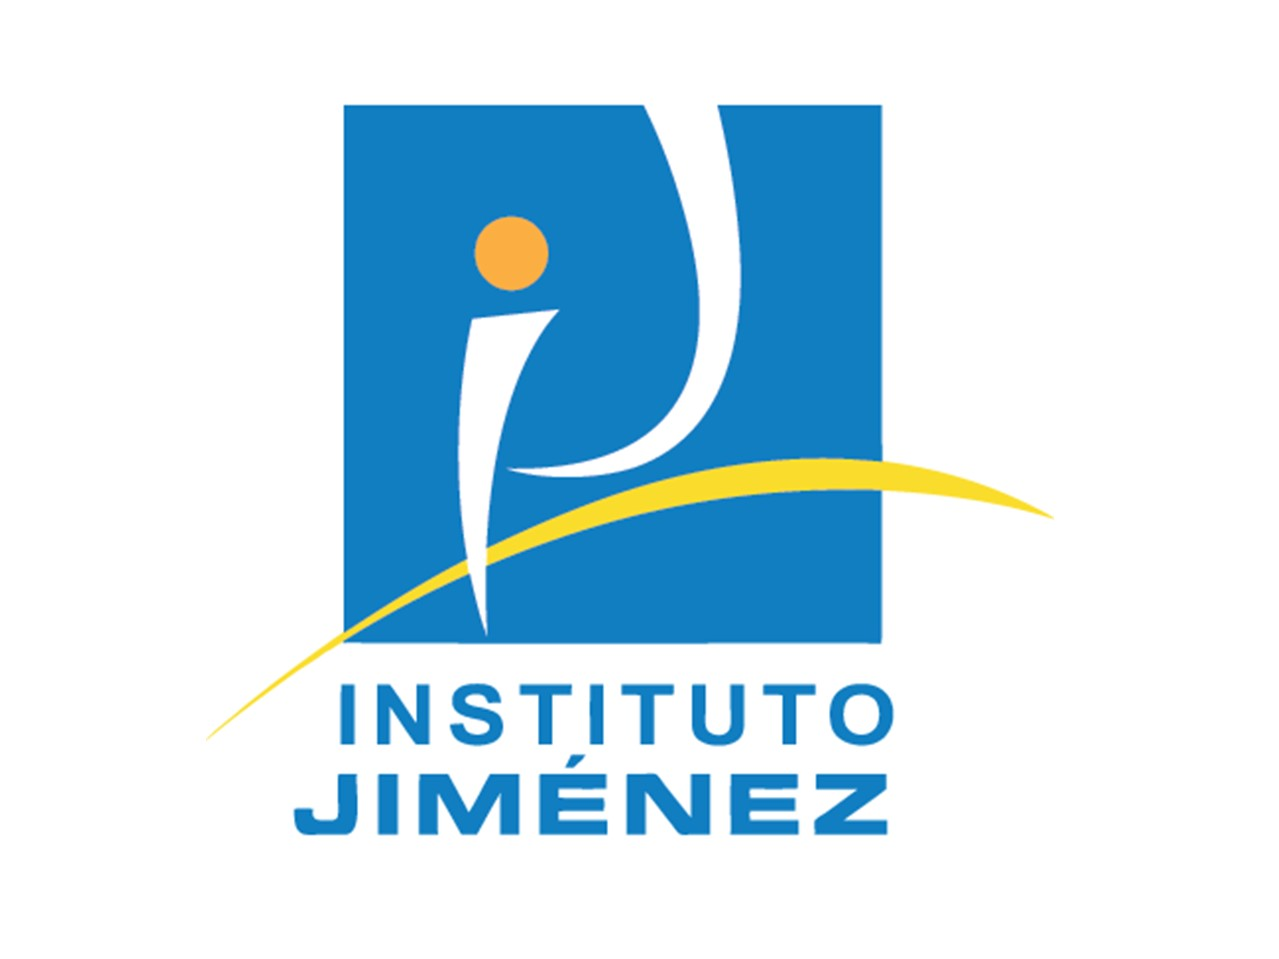 institutojimenez.jpg